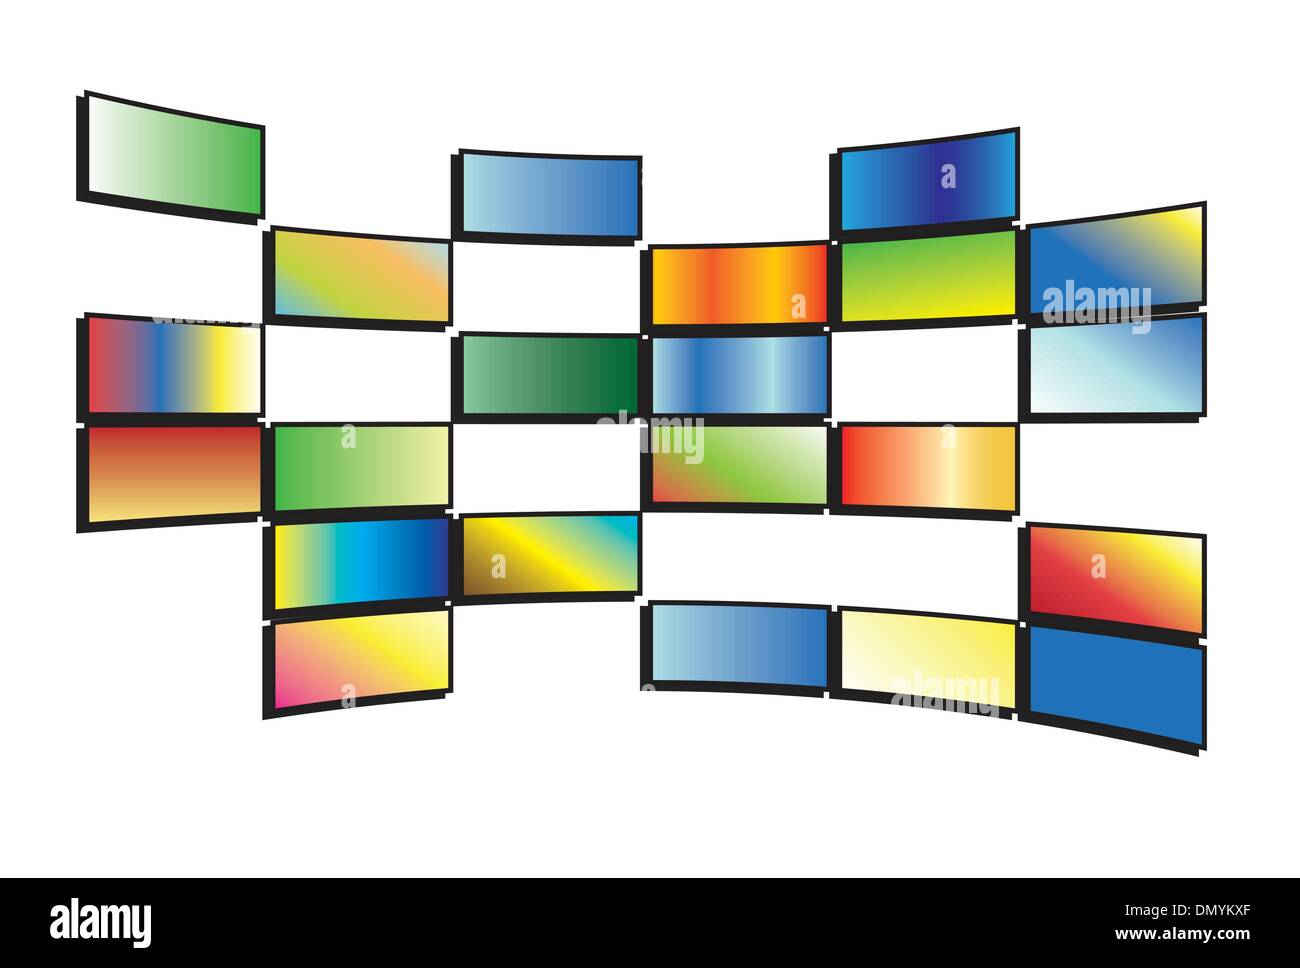 vector illustration of color tv screens - Stock Image